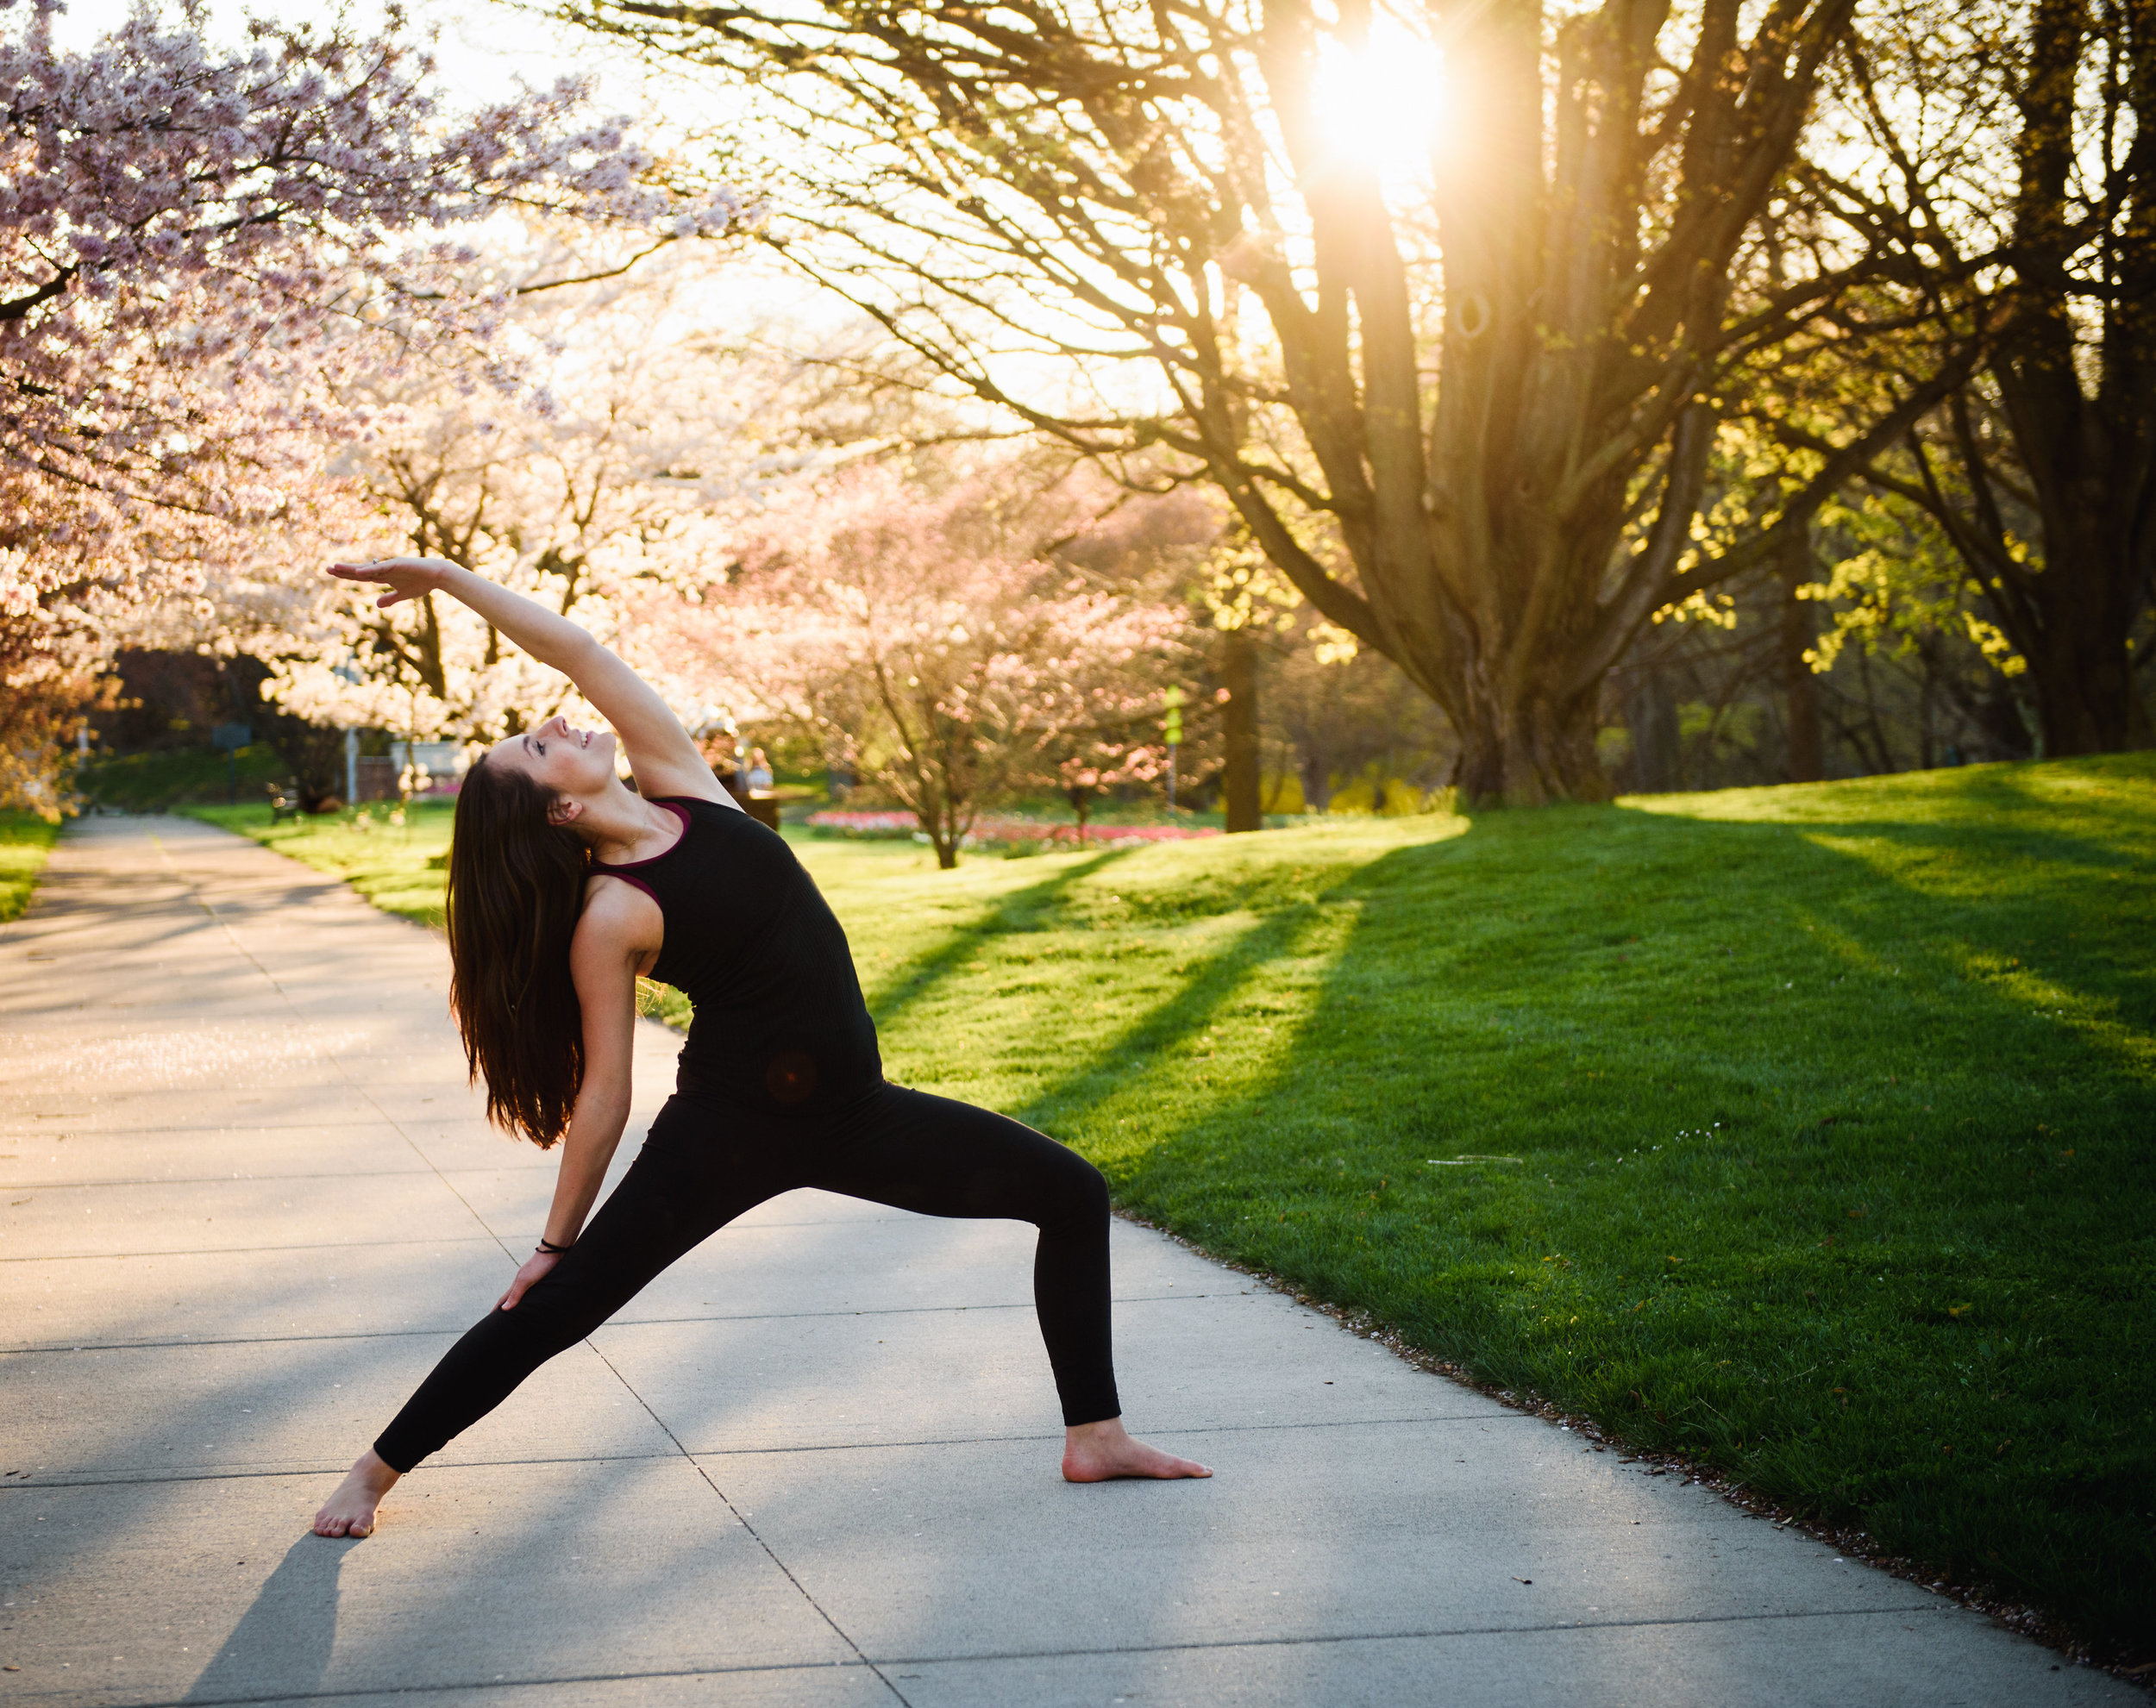 Corporate Wellness - Best work perk ever? Definitely. Offer Pilates classes and your employees will work happier, healthier and with much better posture.